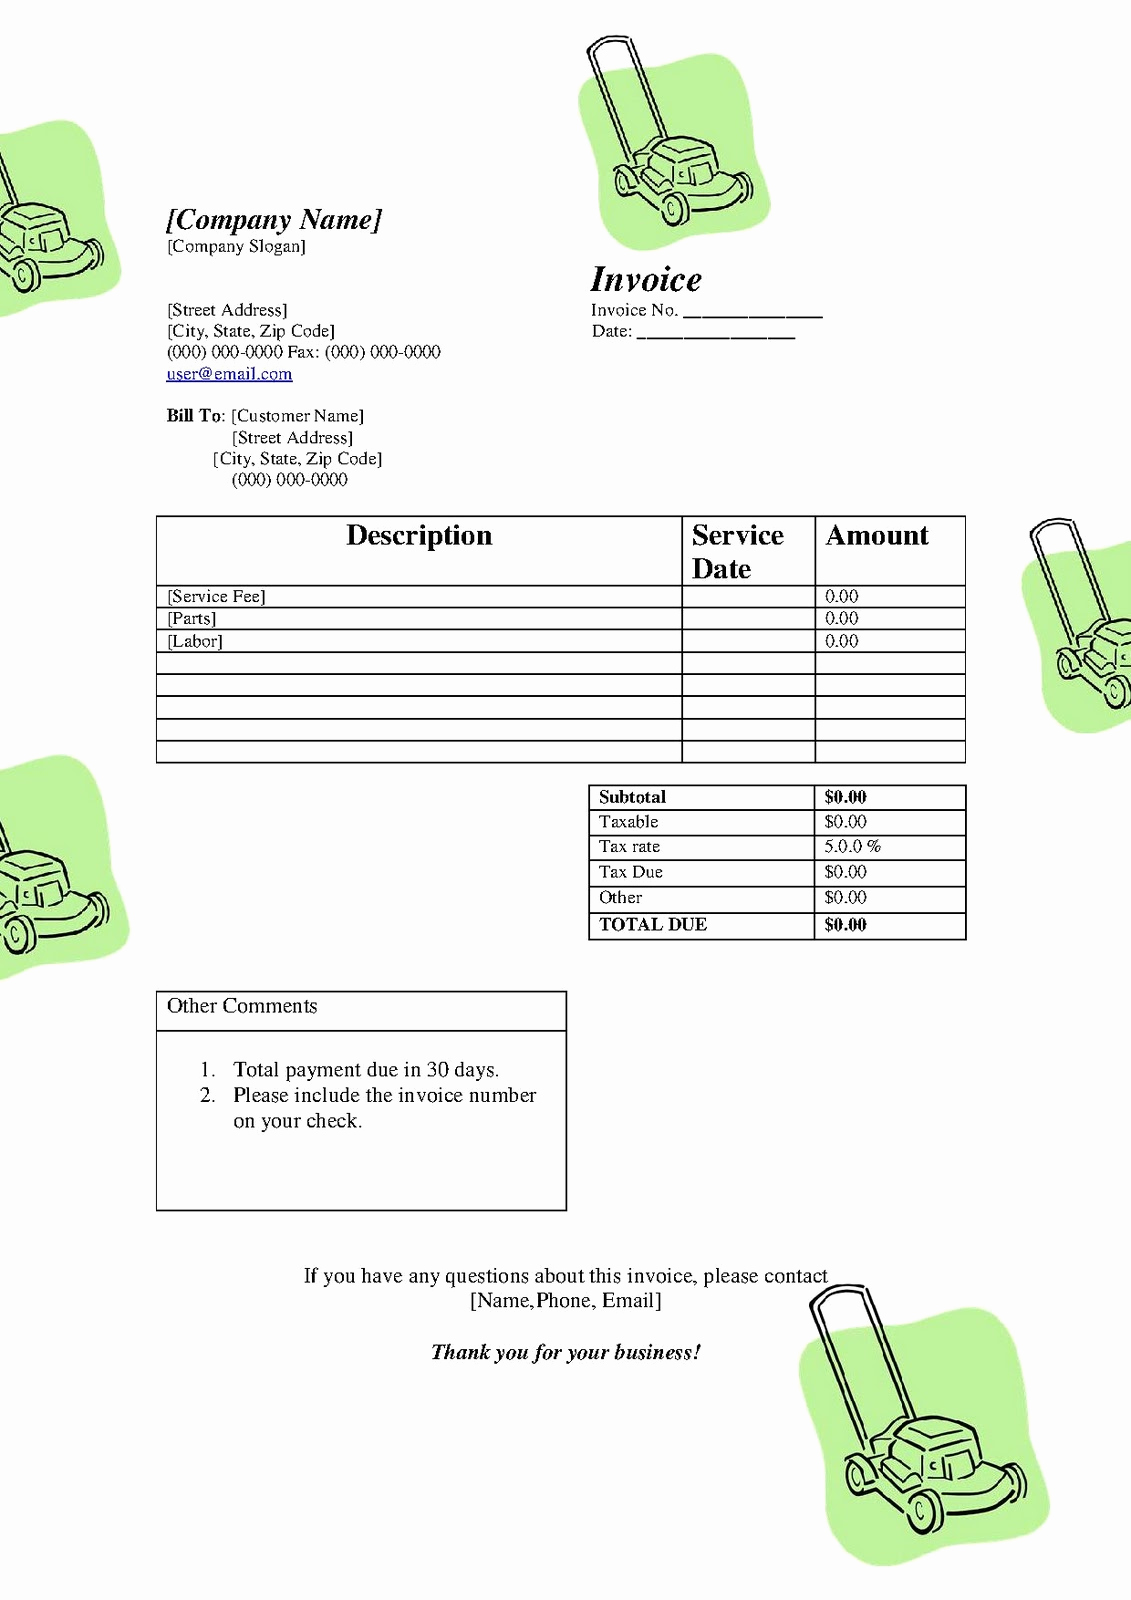 Lawn Service Invoice Template Excel New Free Printable Templates Free Lawn Service Lanscaping